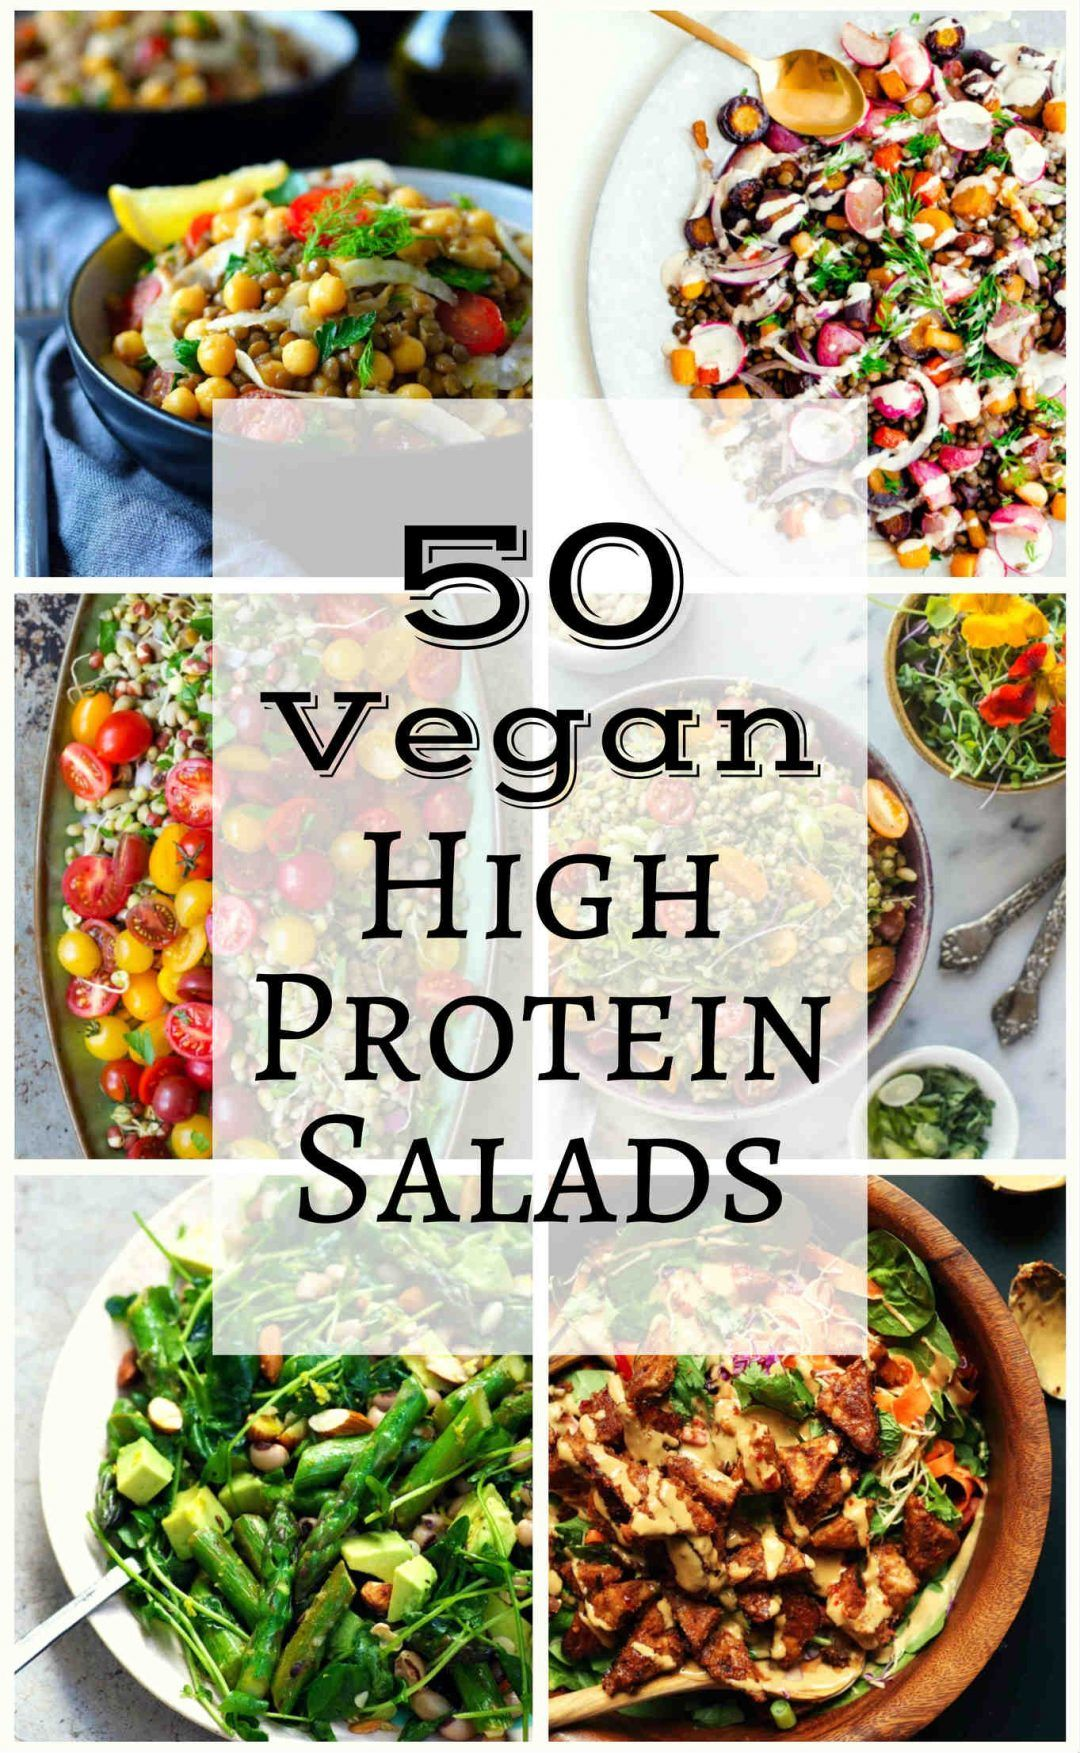 50 Vegan High Protein Salads Sexy Black Vegan Protein